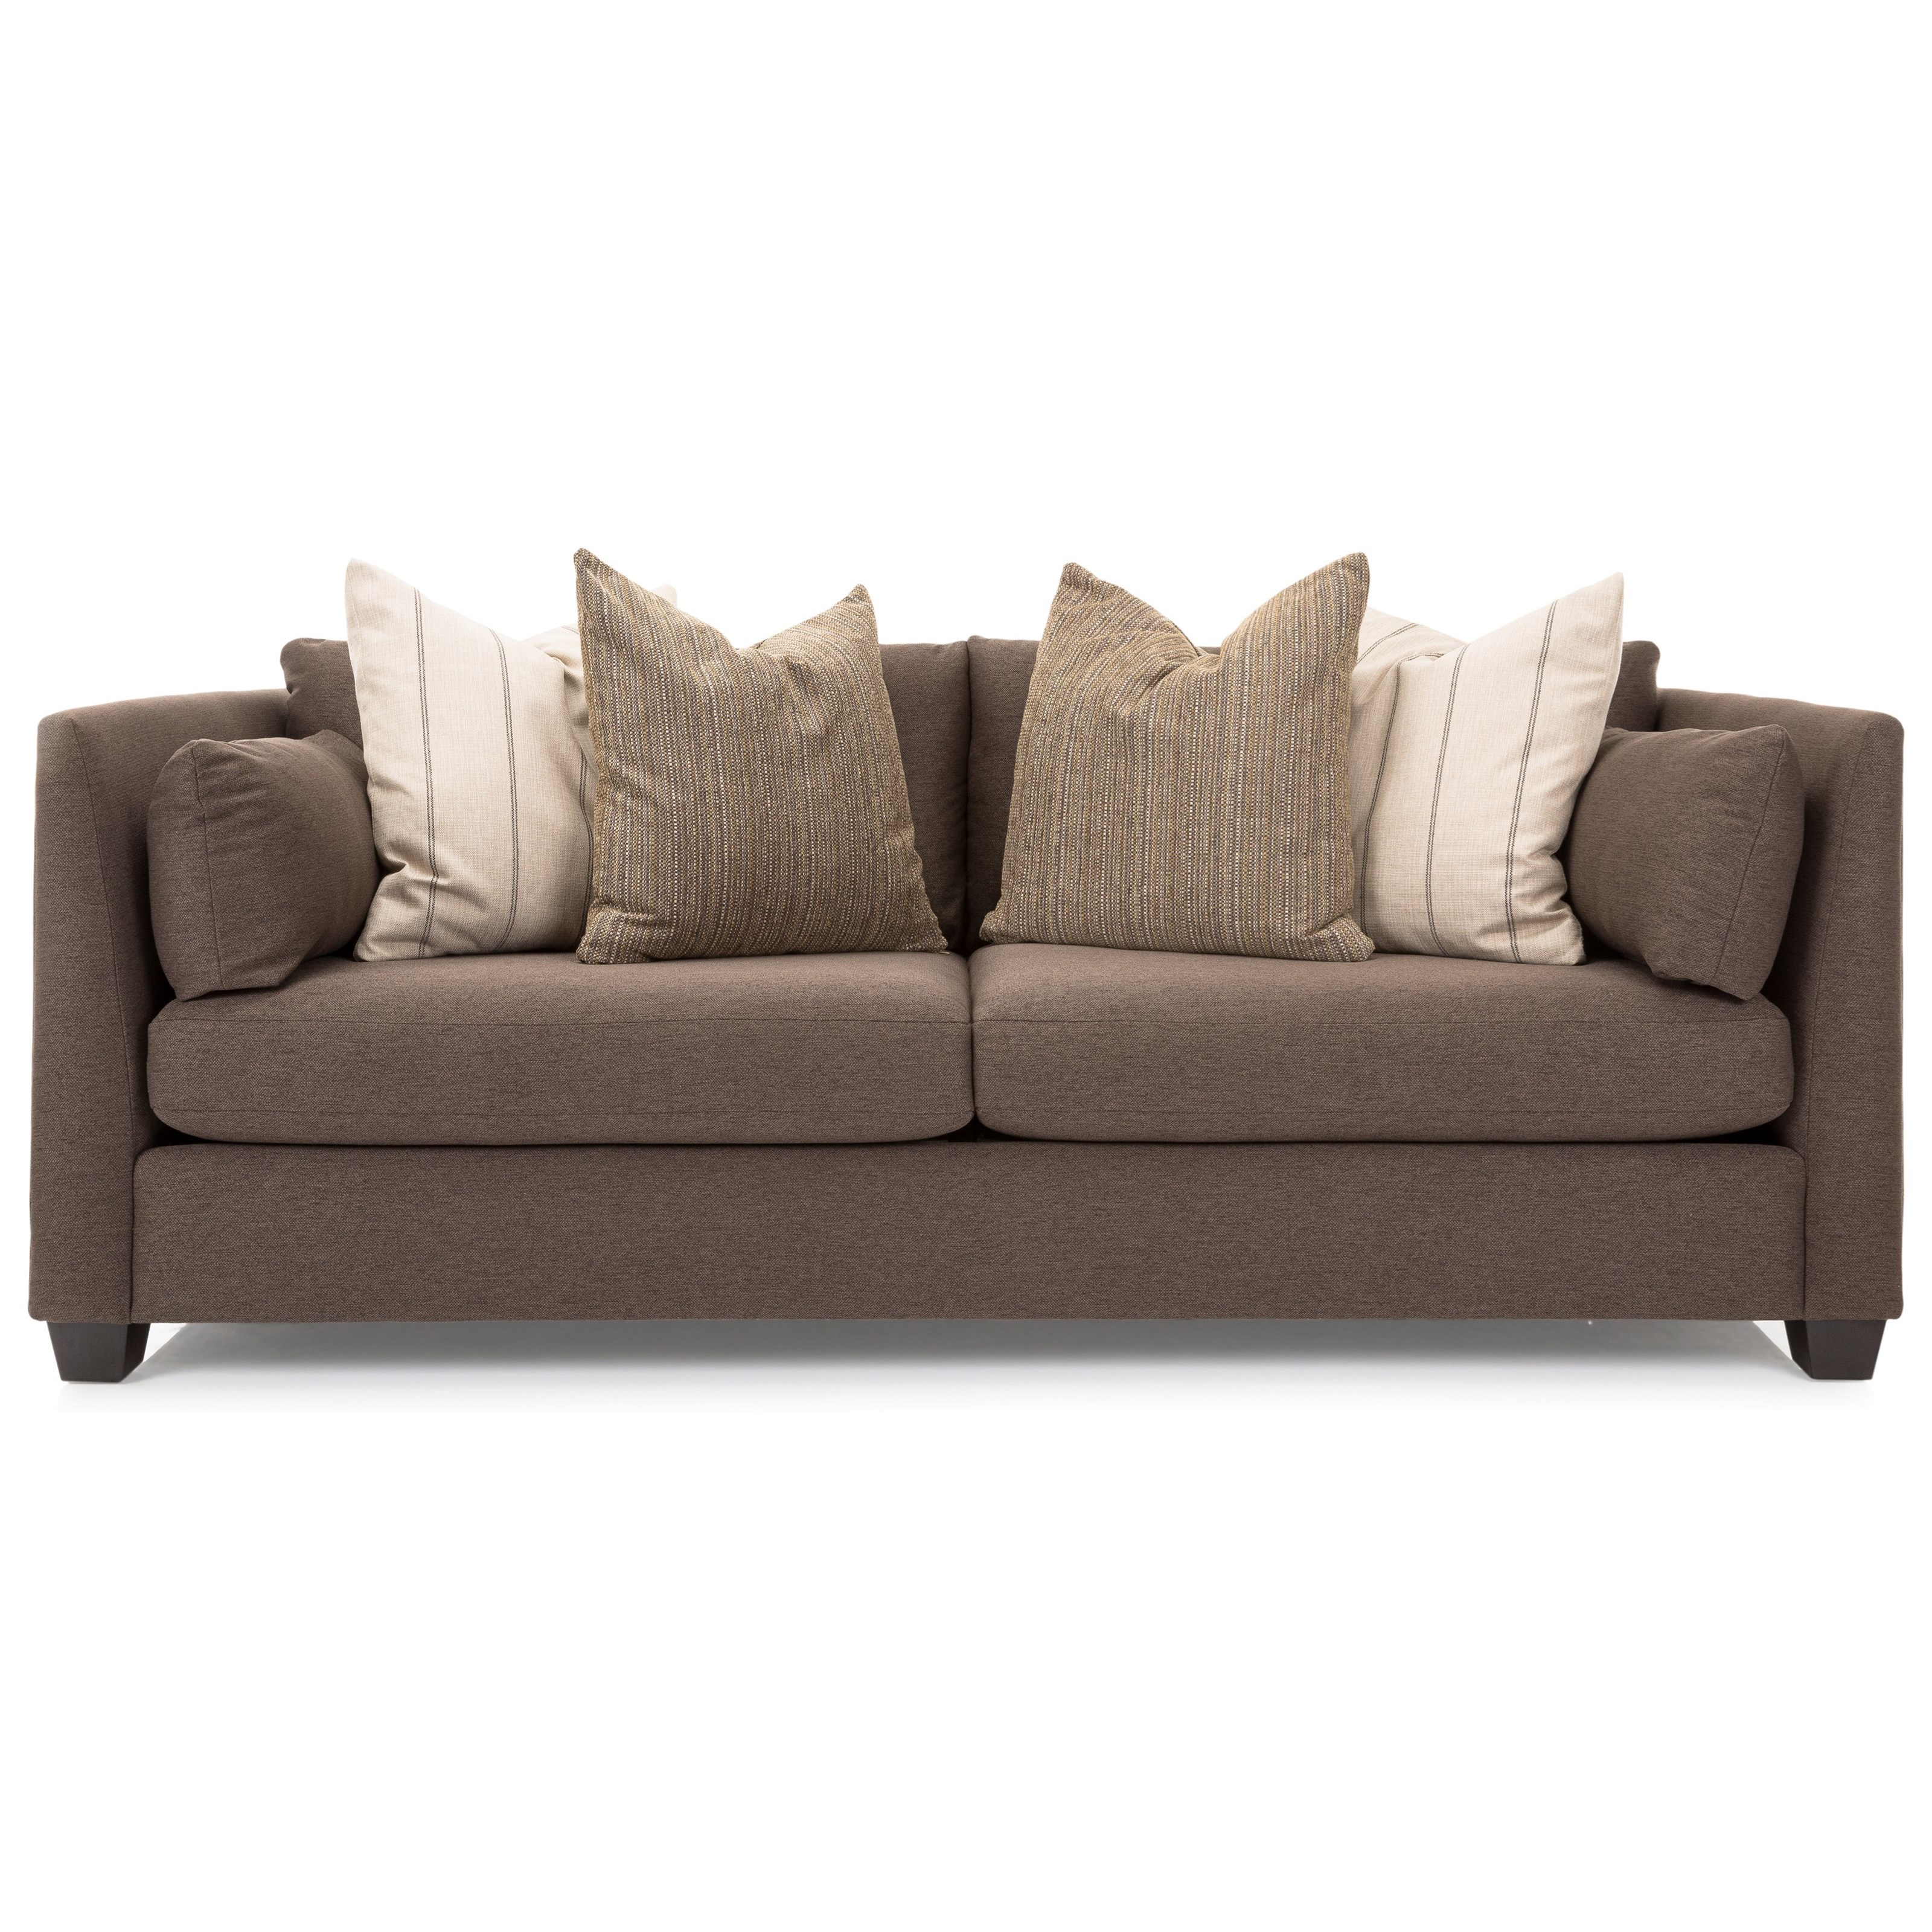 7876 Sofa by Taelor Designs at Bennett's Furniture and Mattresses